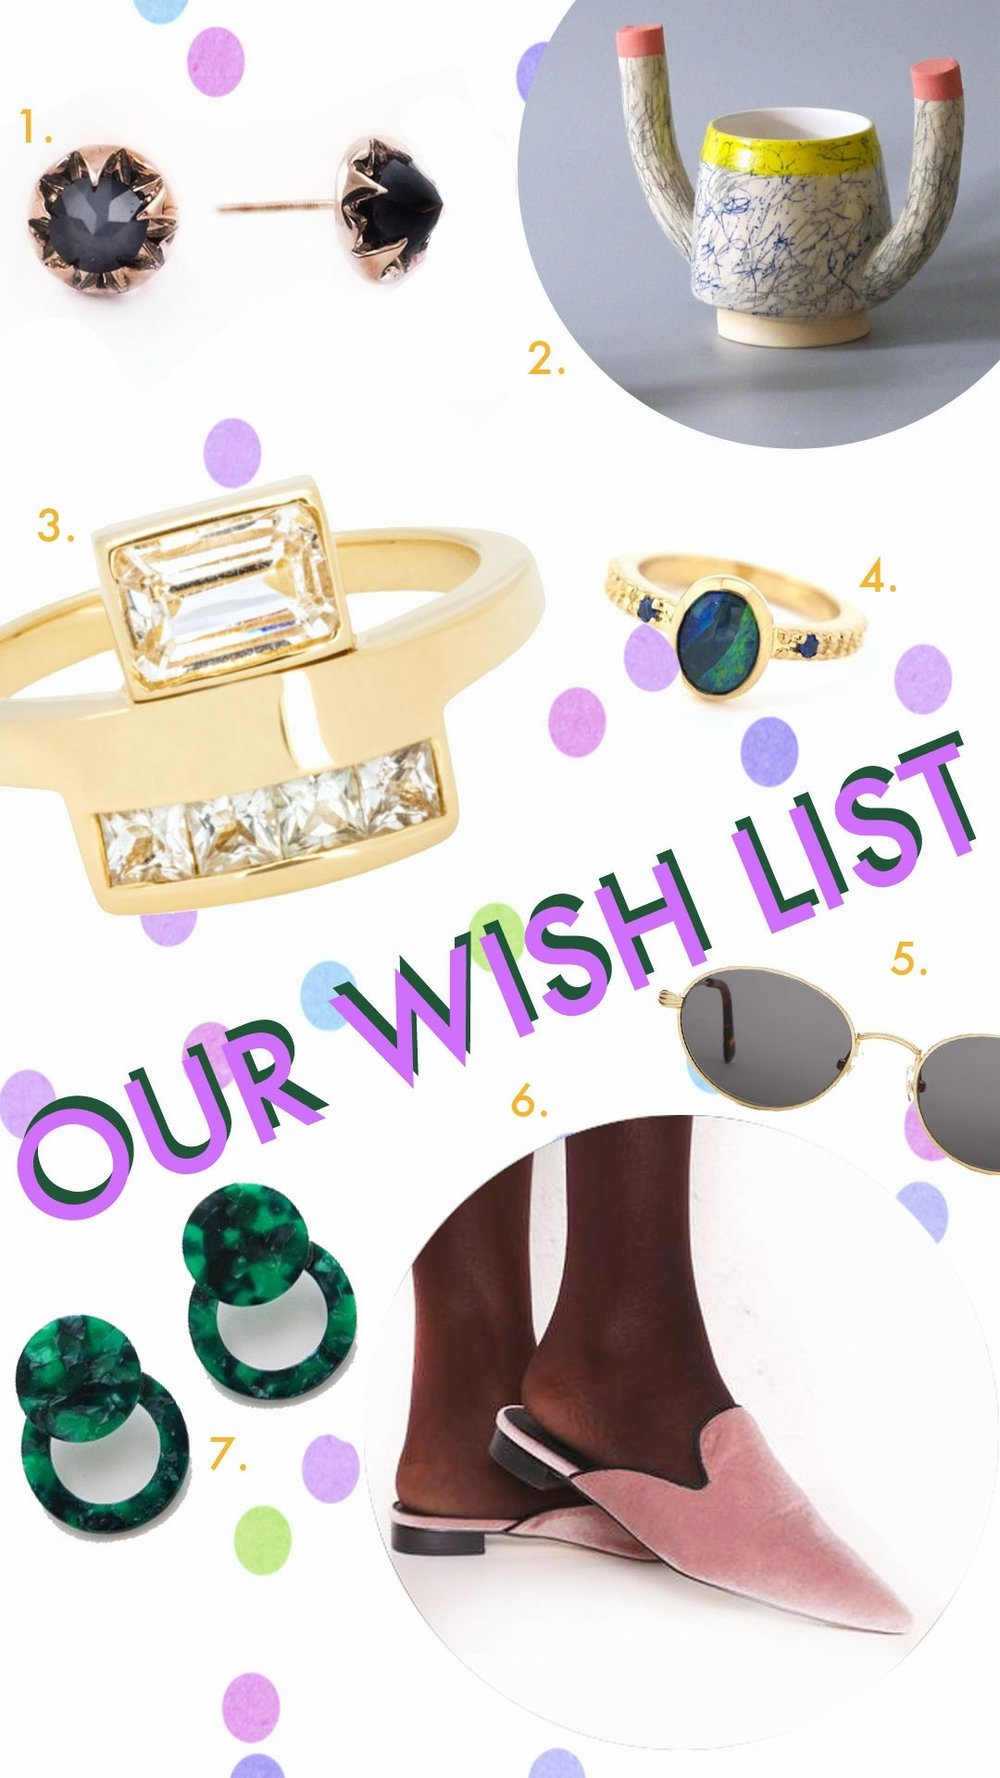 WISH-LIST-1-BLOG.jpg